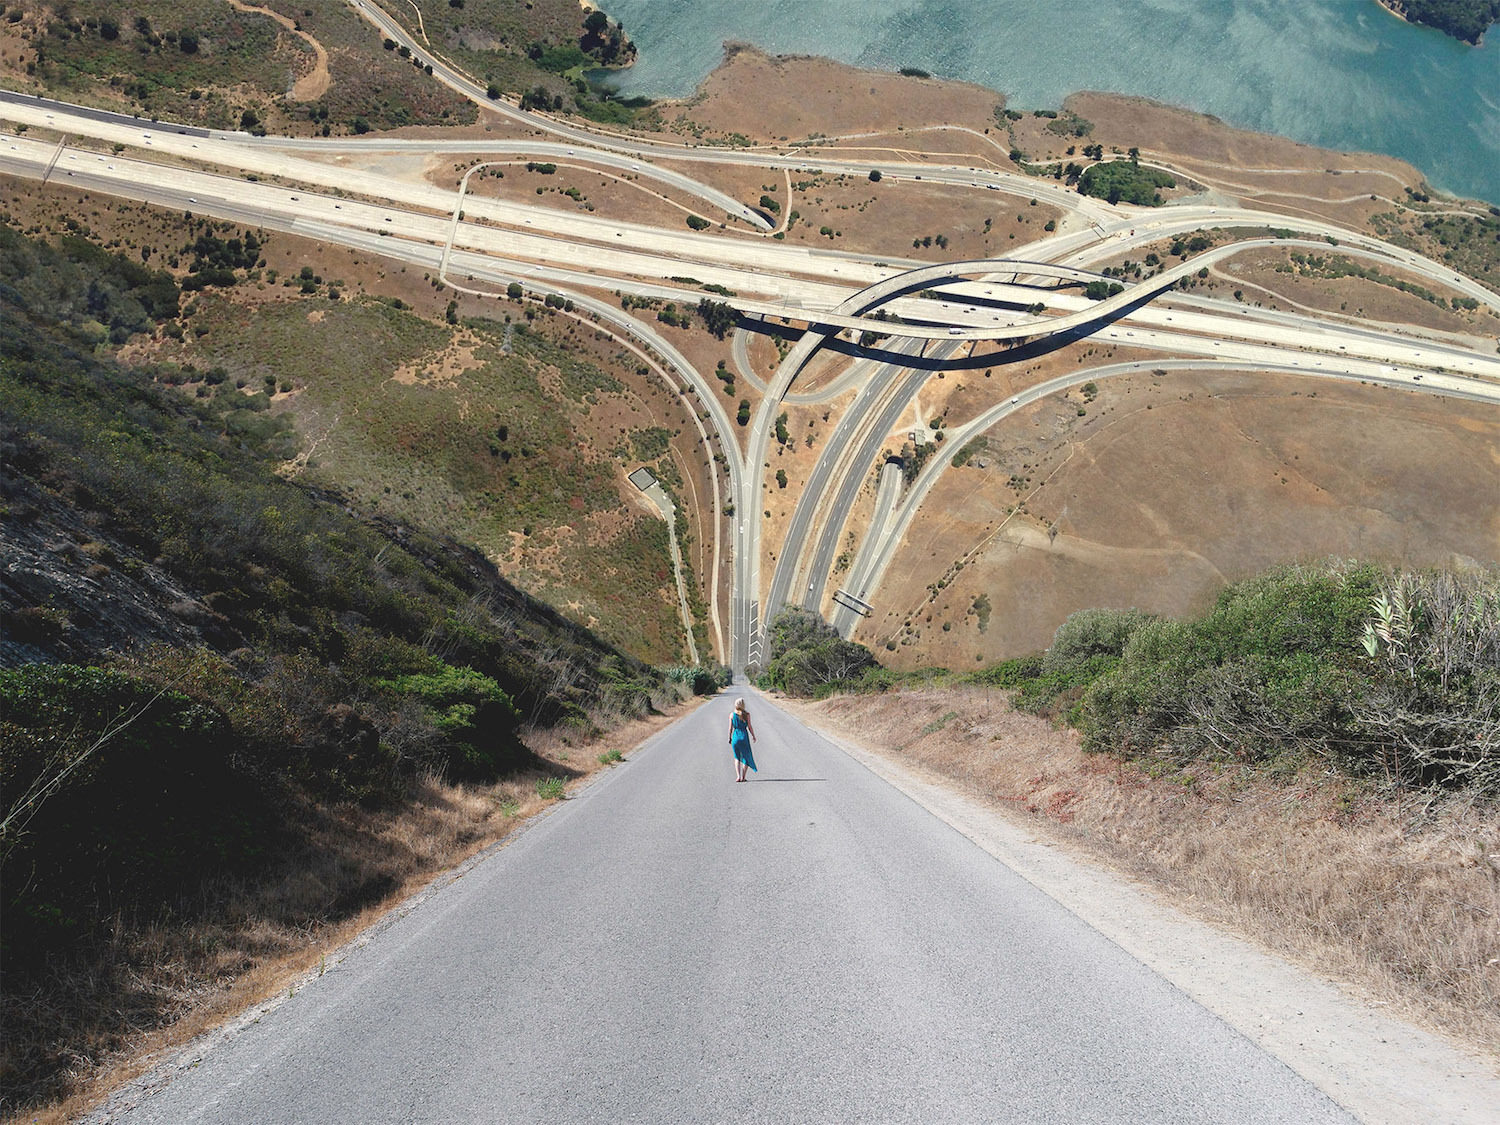 Le photo manipulations di Laurent Rosset | Collater.al